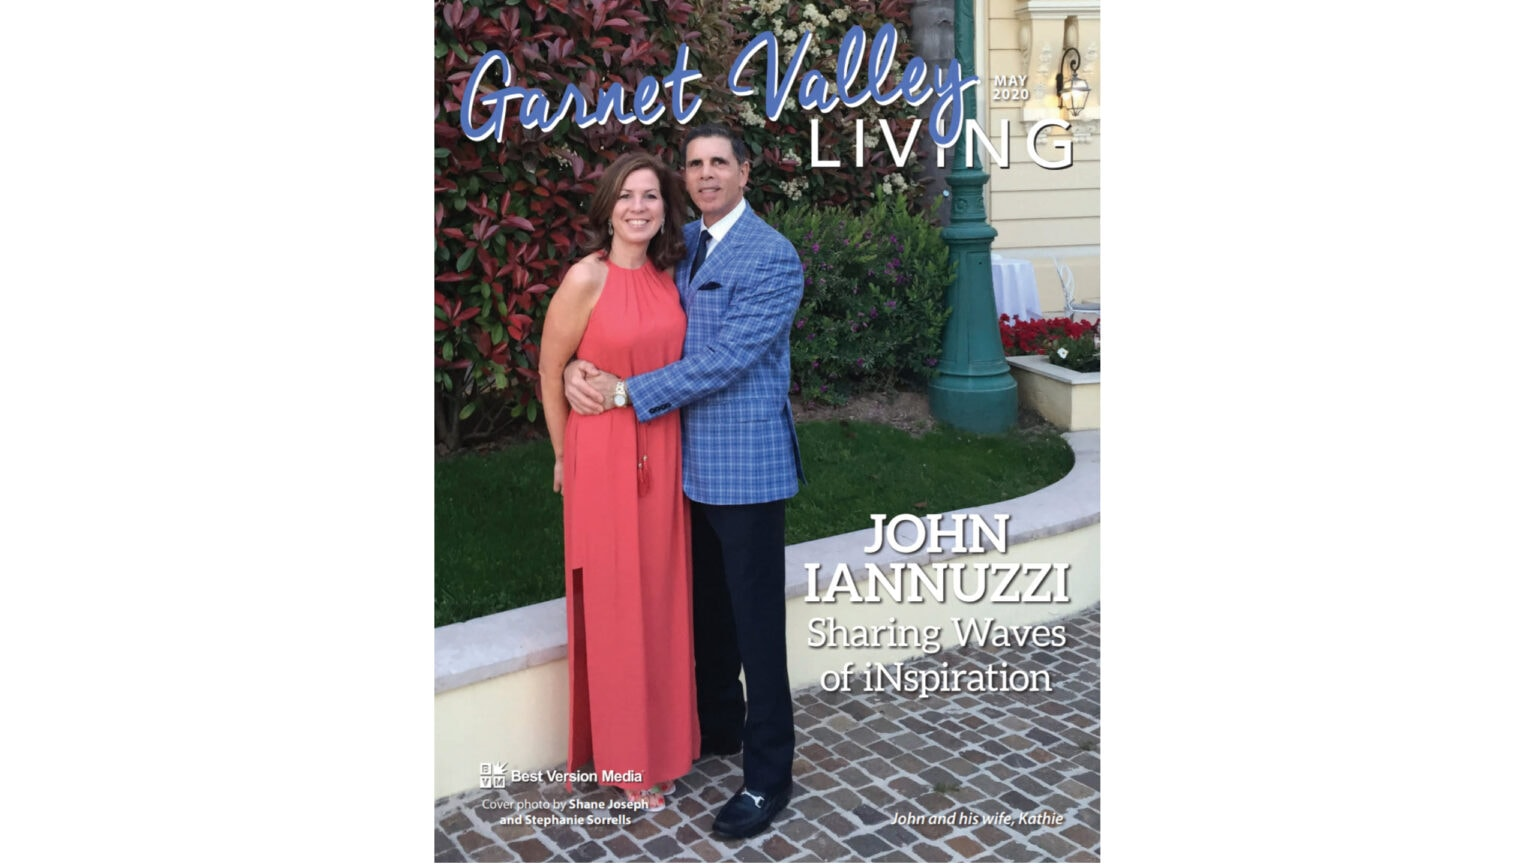 John and Kathie Iannuzzi - Garnet Valley Living 1